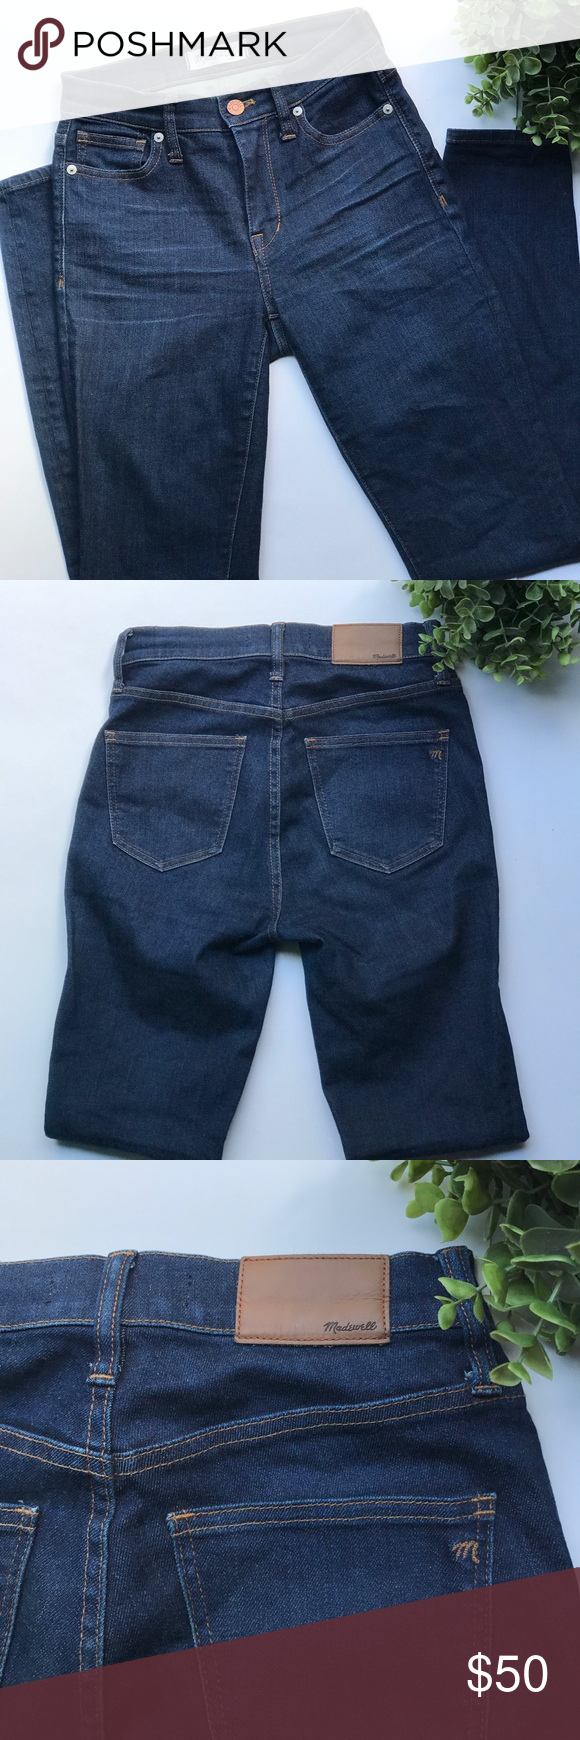 "MADEWELL High Riser Skinny in Davis Wash EUC!! Lean and sexy with a 9"" rise (right in '70s rock-muse territory), this one's legs-for-days look and supersleek effect come from using some of the best denim in the world.  Size 24 Inseam 28"" Madewell Jeans Skinny"